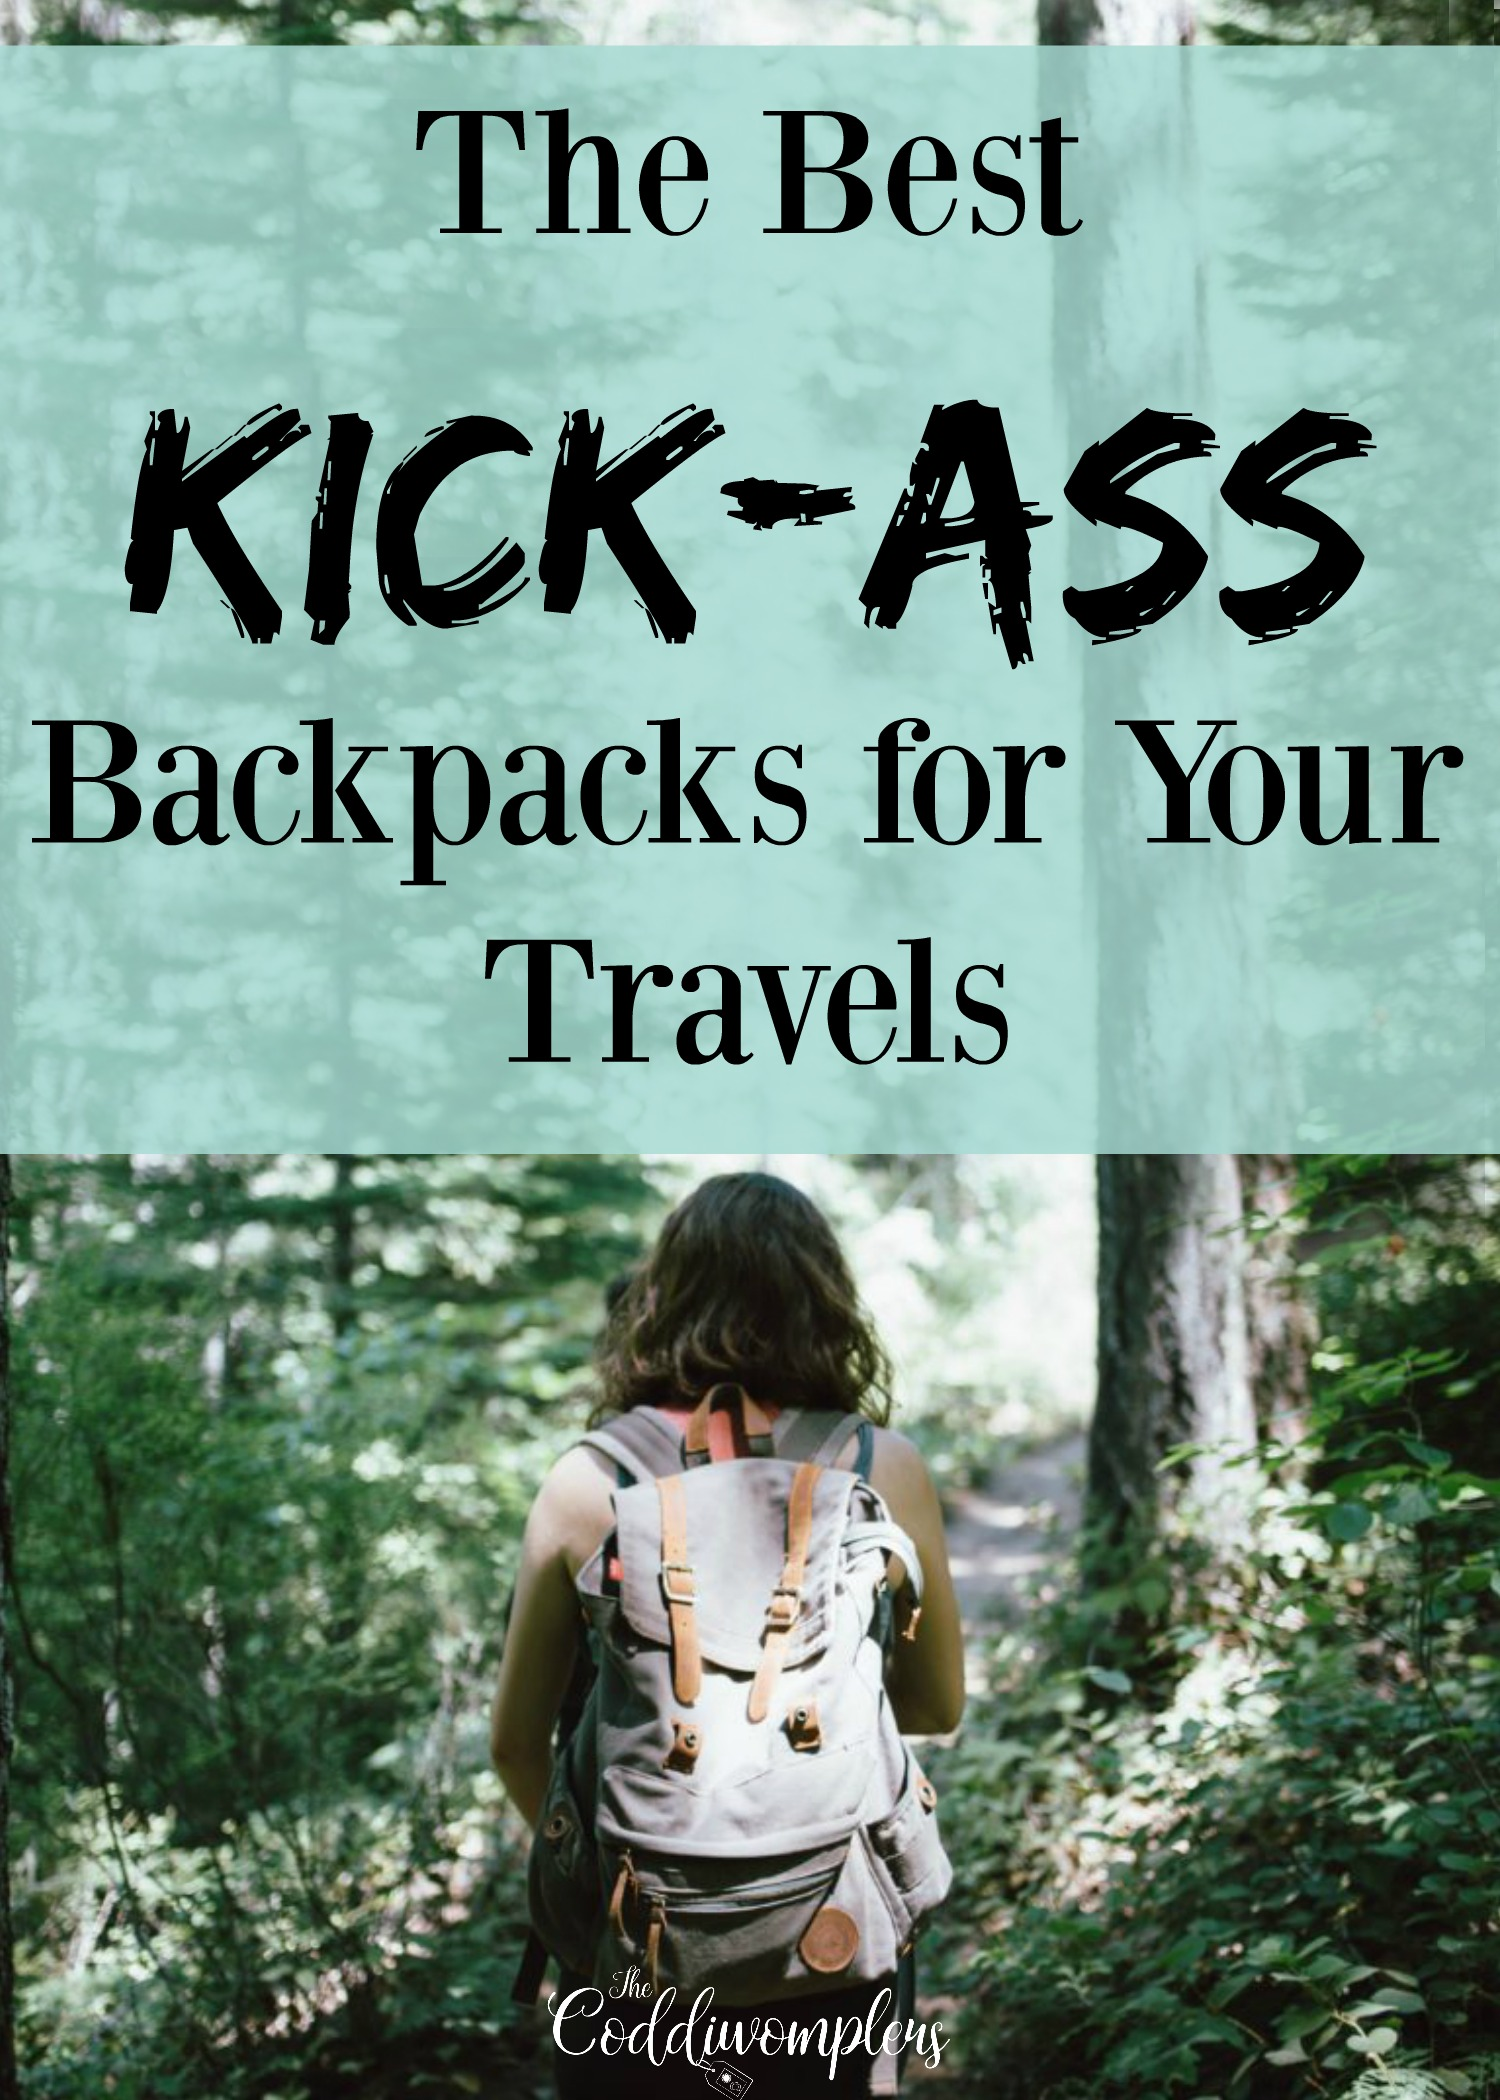 Backpacks are so much easier to use when traveling! Check out all these kick-ass backpacks for your next trip and kick your wheeled bag to the curb.